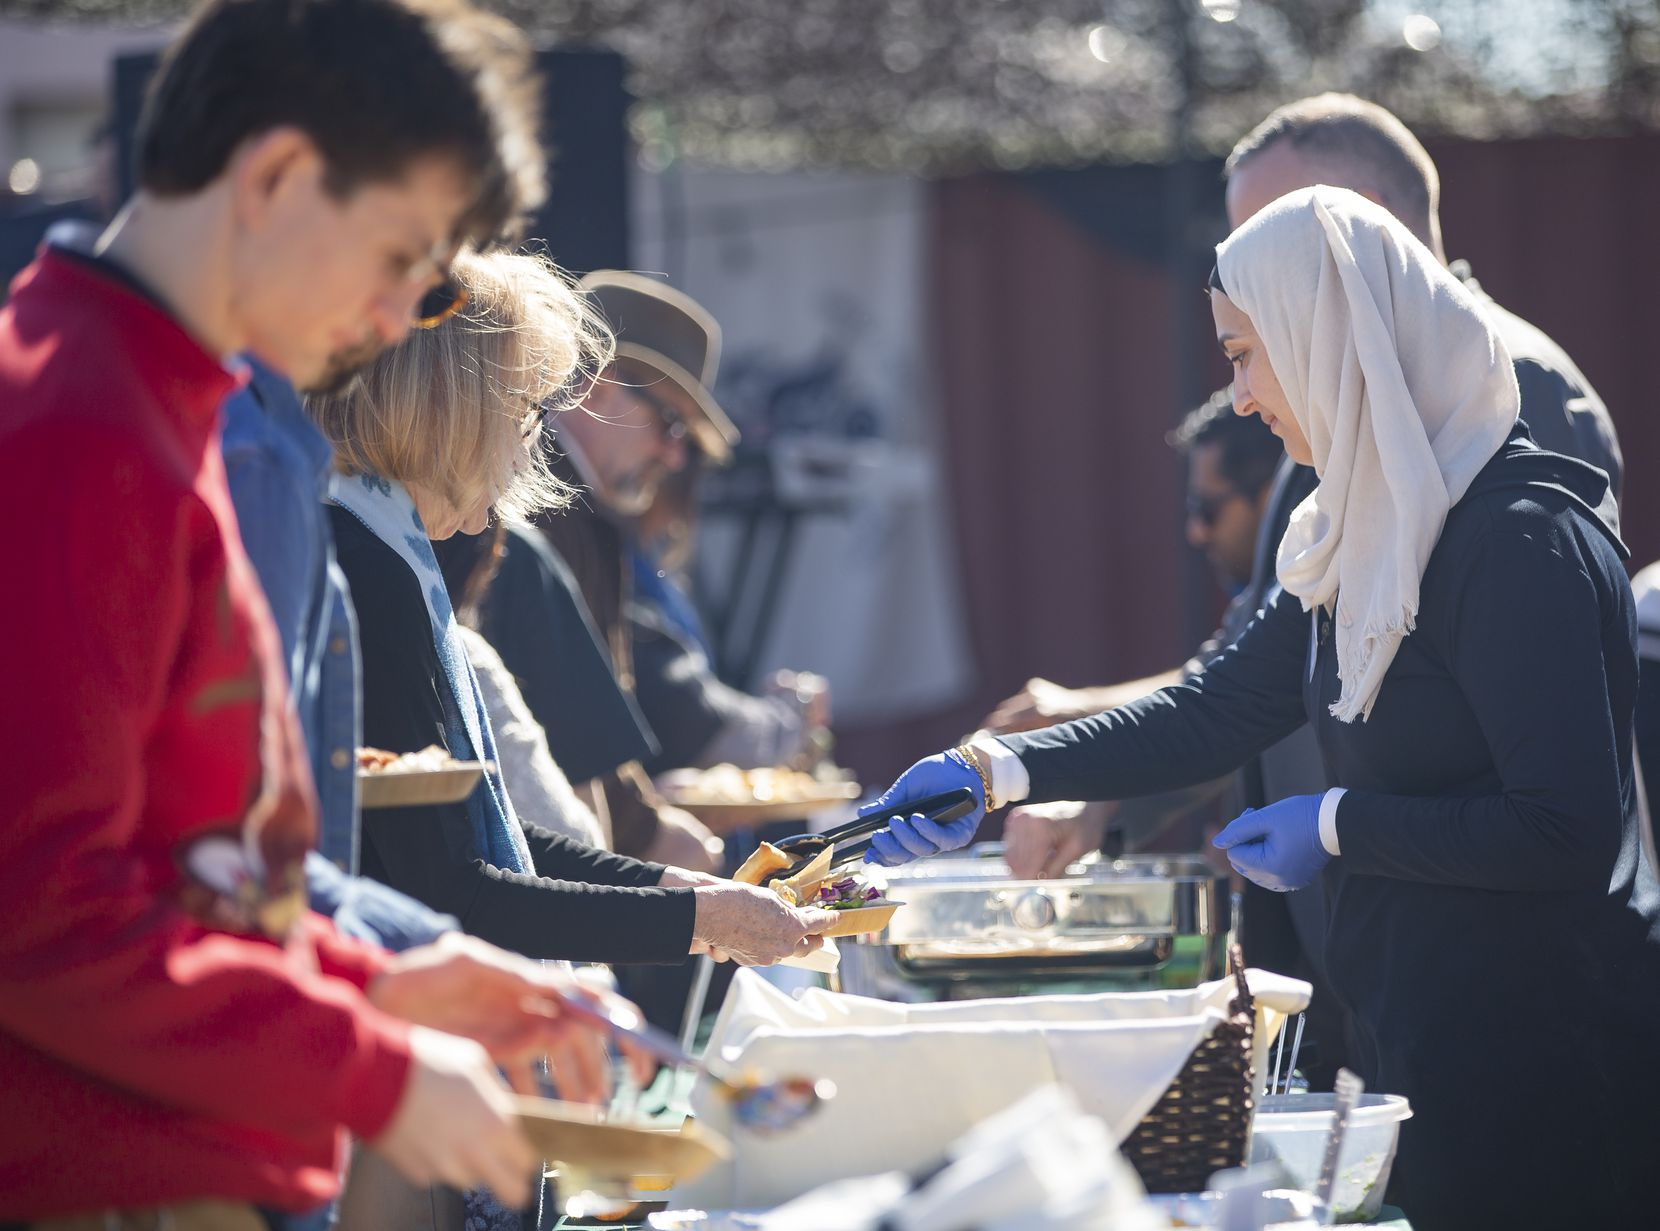 Members of Break Bread, Break Borders serve Iraqi and Syrian dishes and barbecue during an event in partnership with Nasher Prize winner Michael Rakowitz at the F.A.R.M., Farmers Assisting Returning Military.